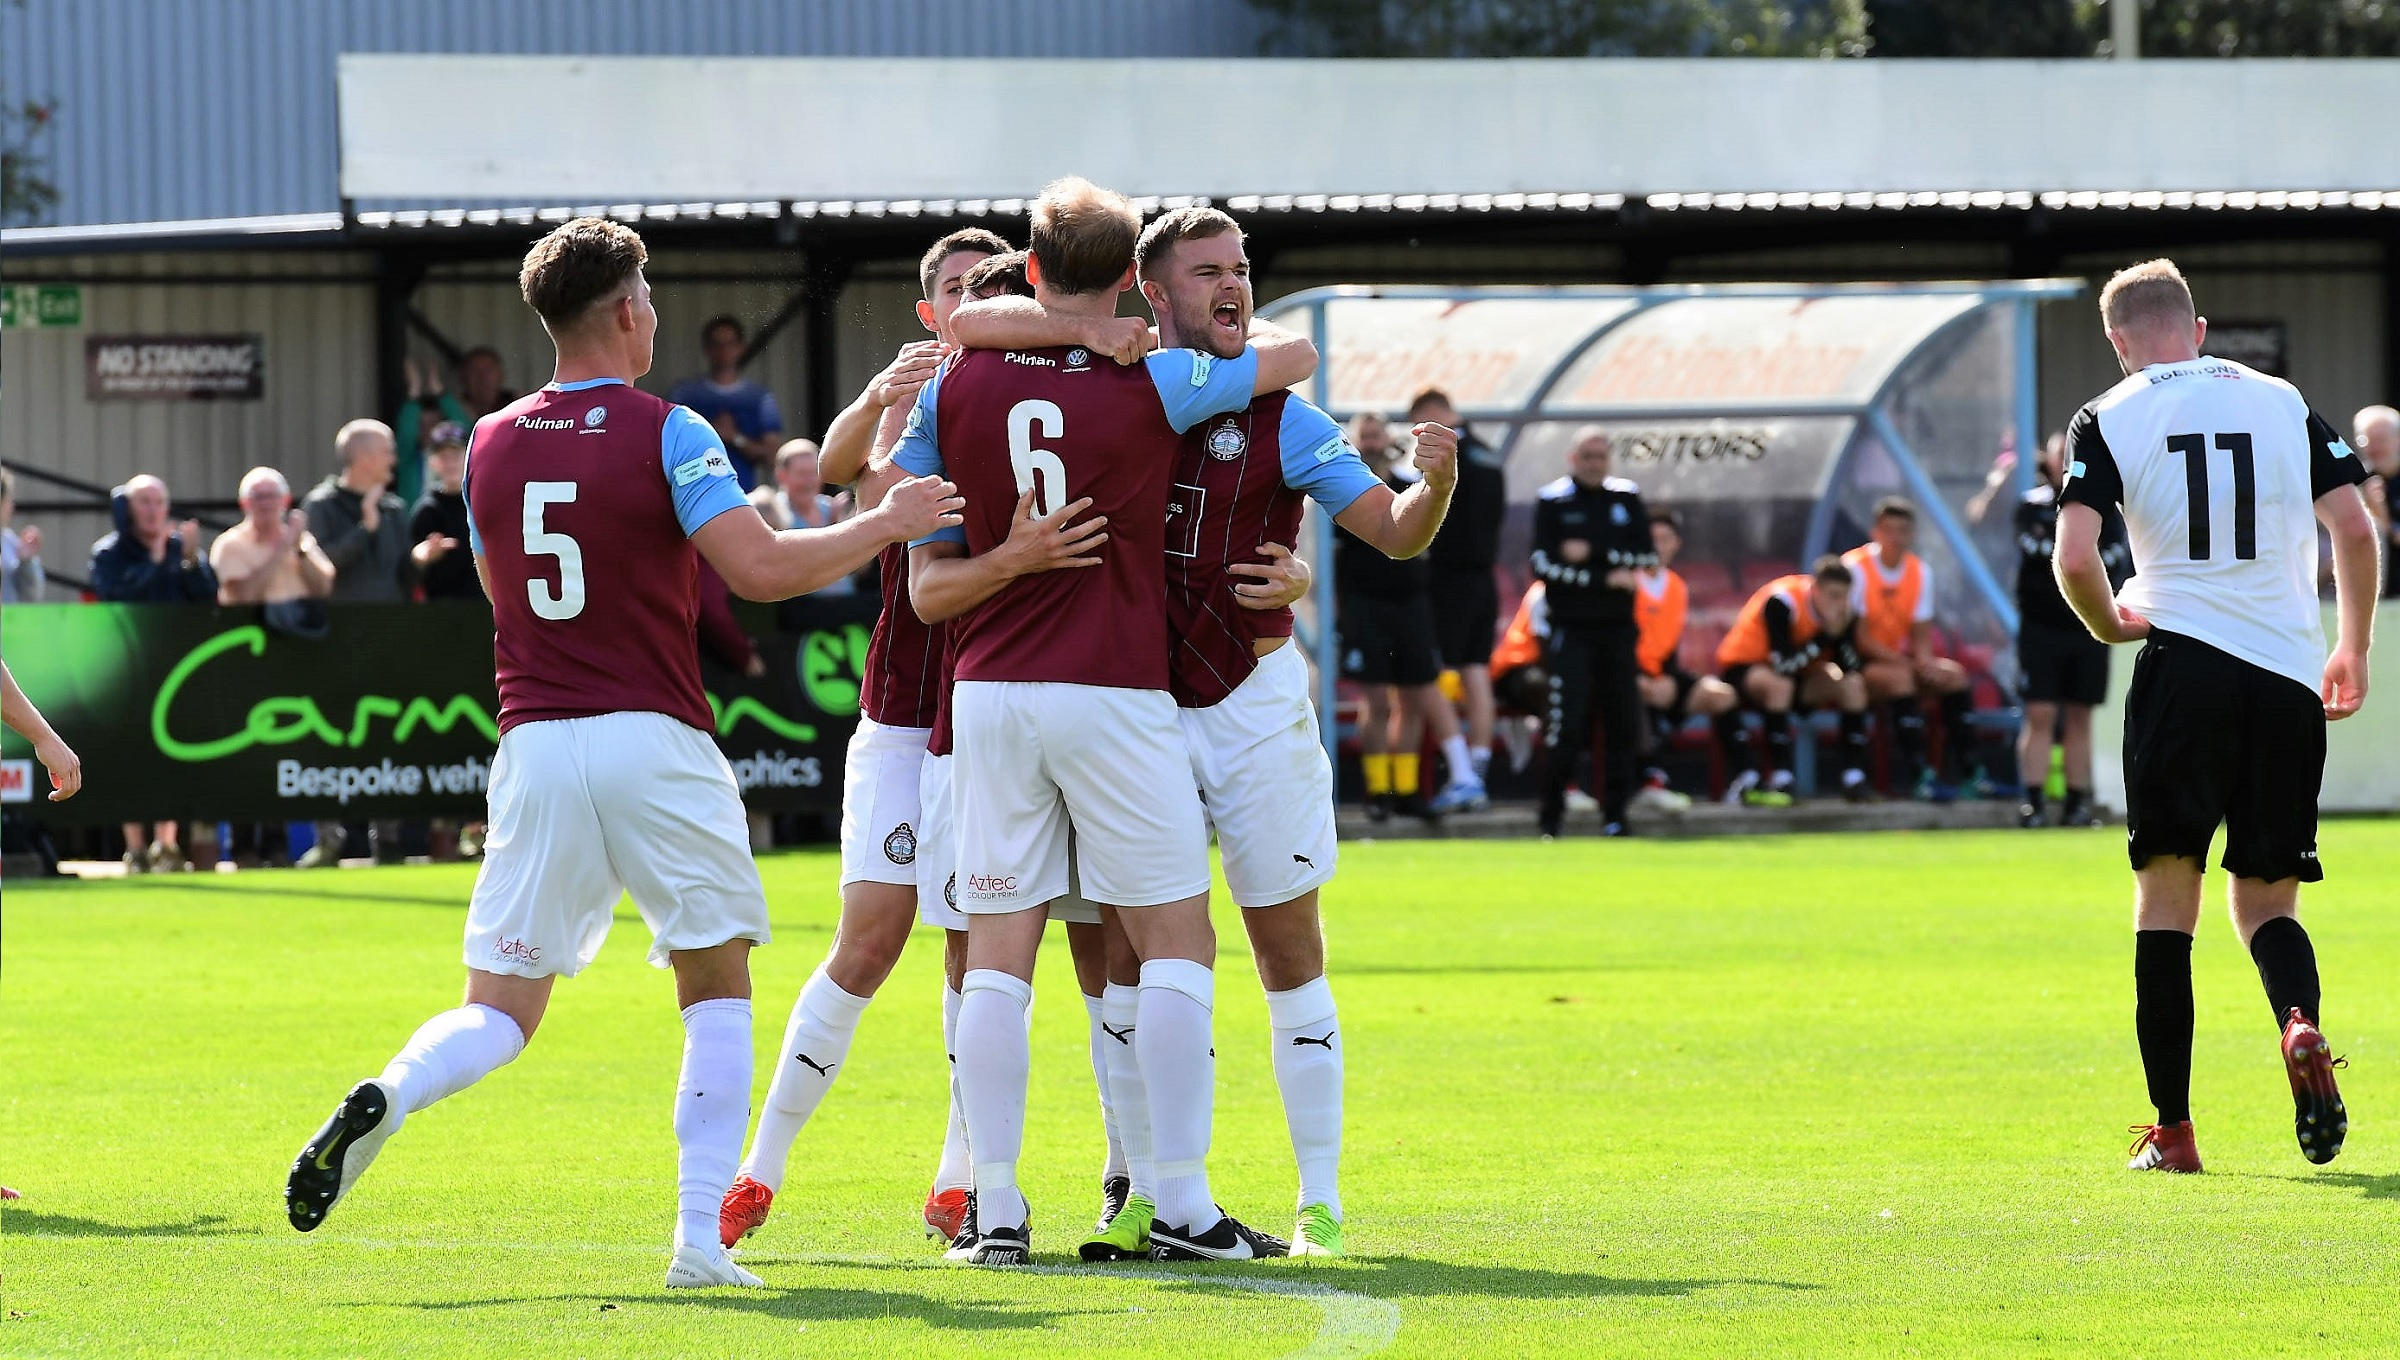 Match Preview: South Shields vs Stalybridge Celtic, BetVictor Northern Premier Division